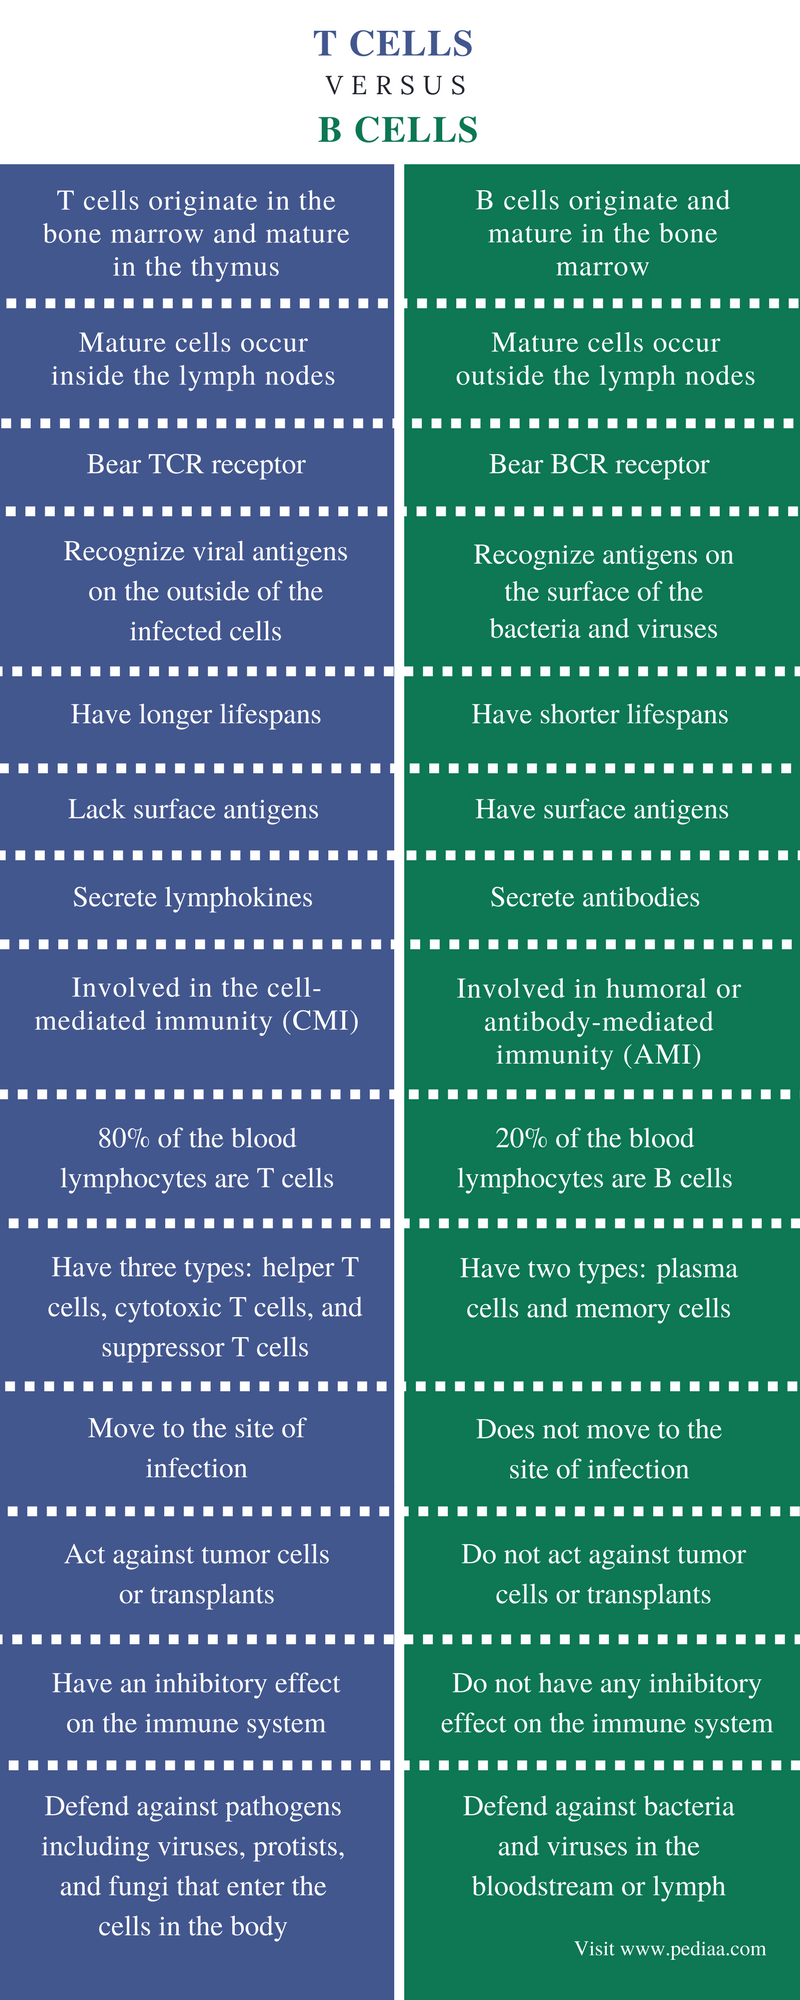 Difference Between T Cells and B Cells - Comparison Summary